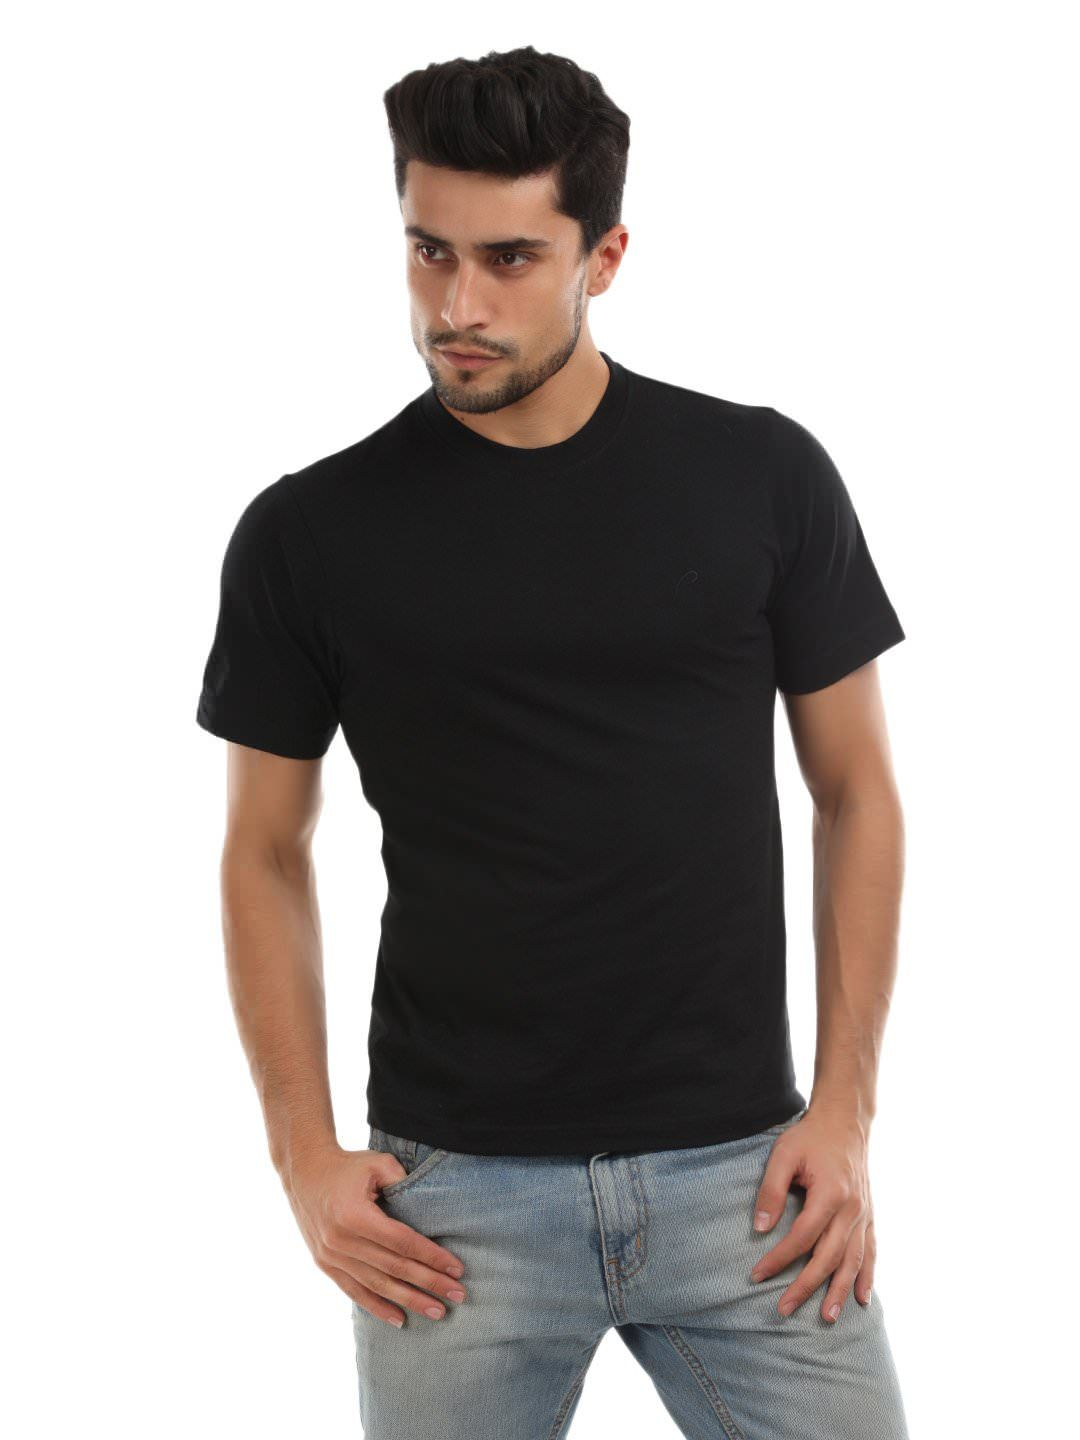 Men's black t shirt | Men's fashion | Pinterest | Shirts, Black t ...